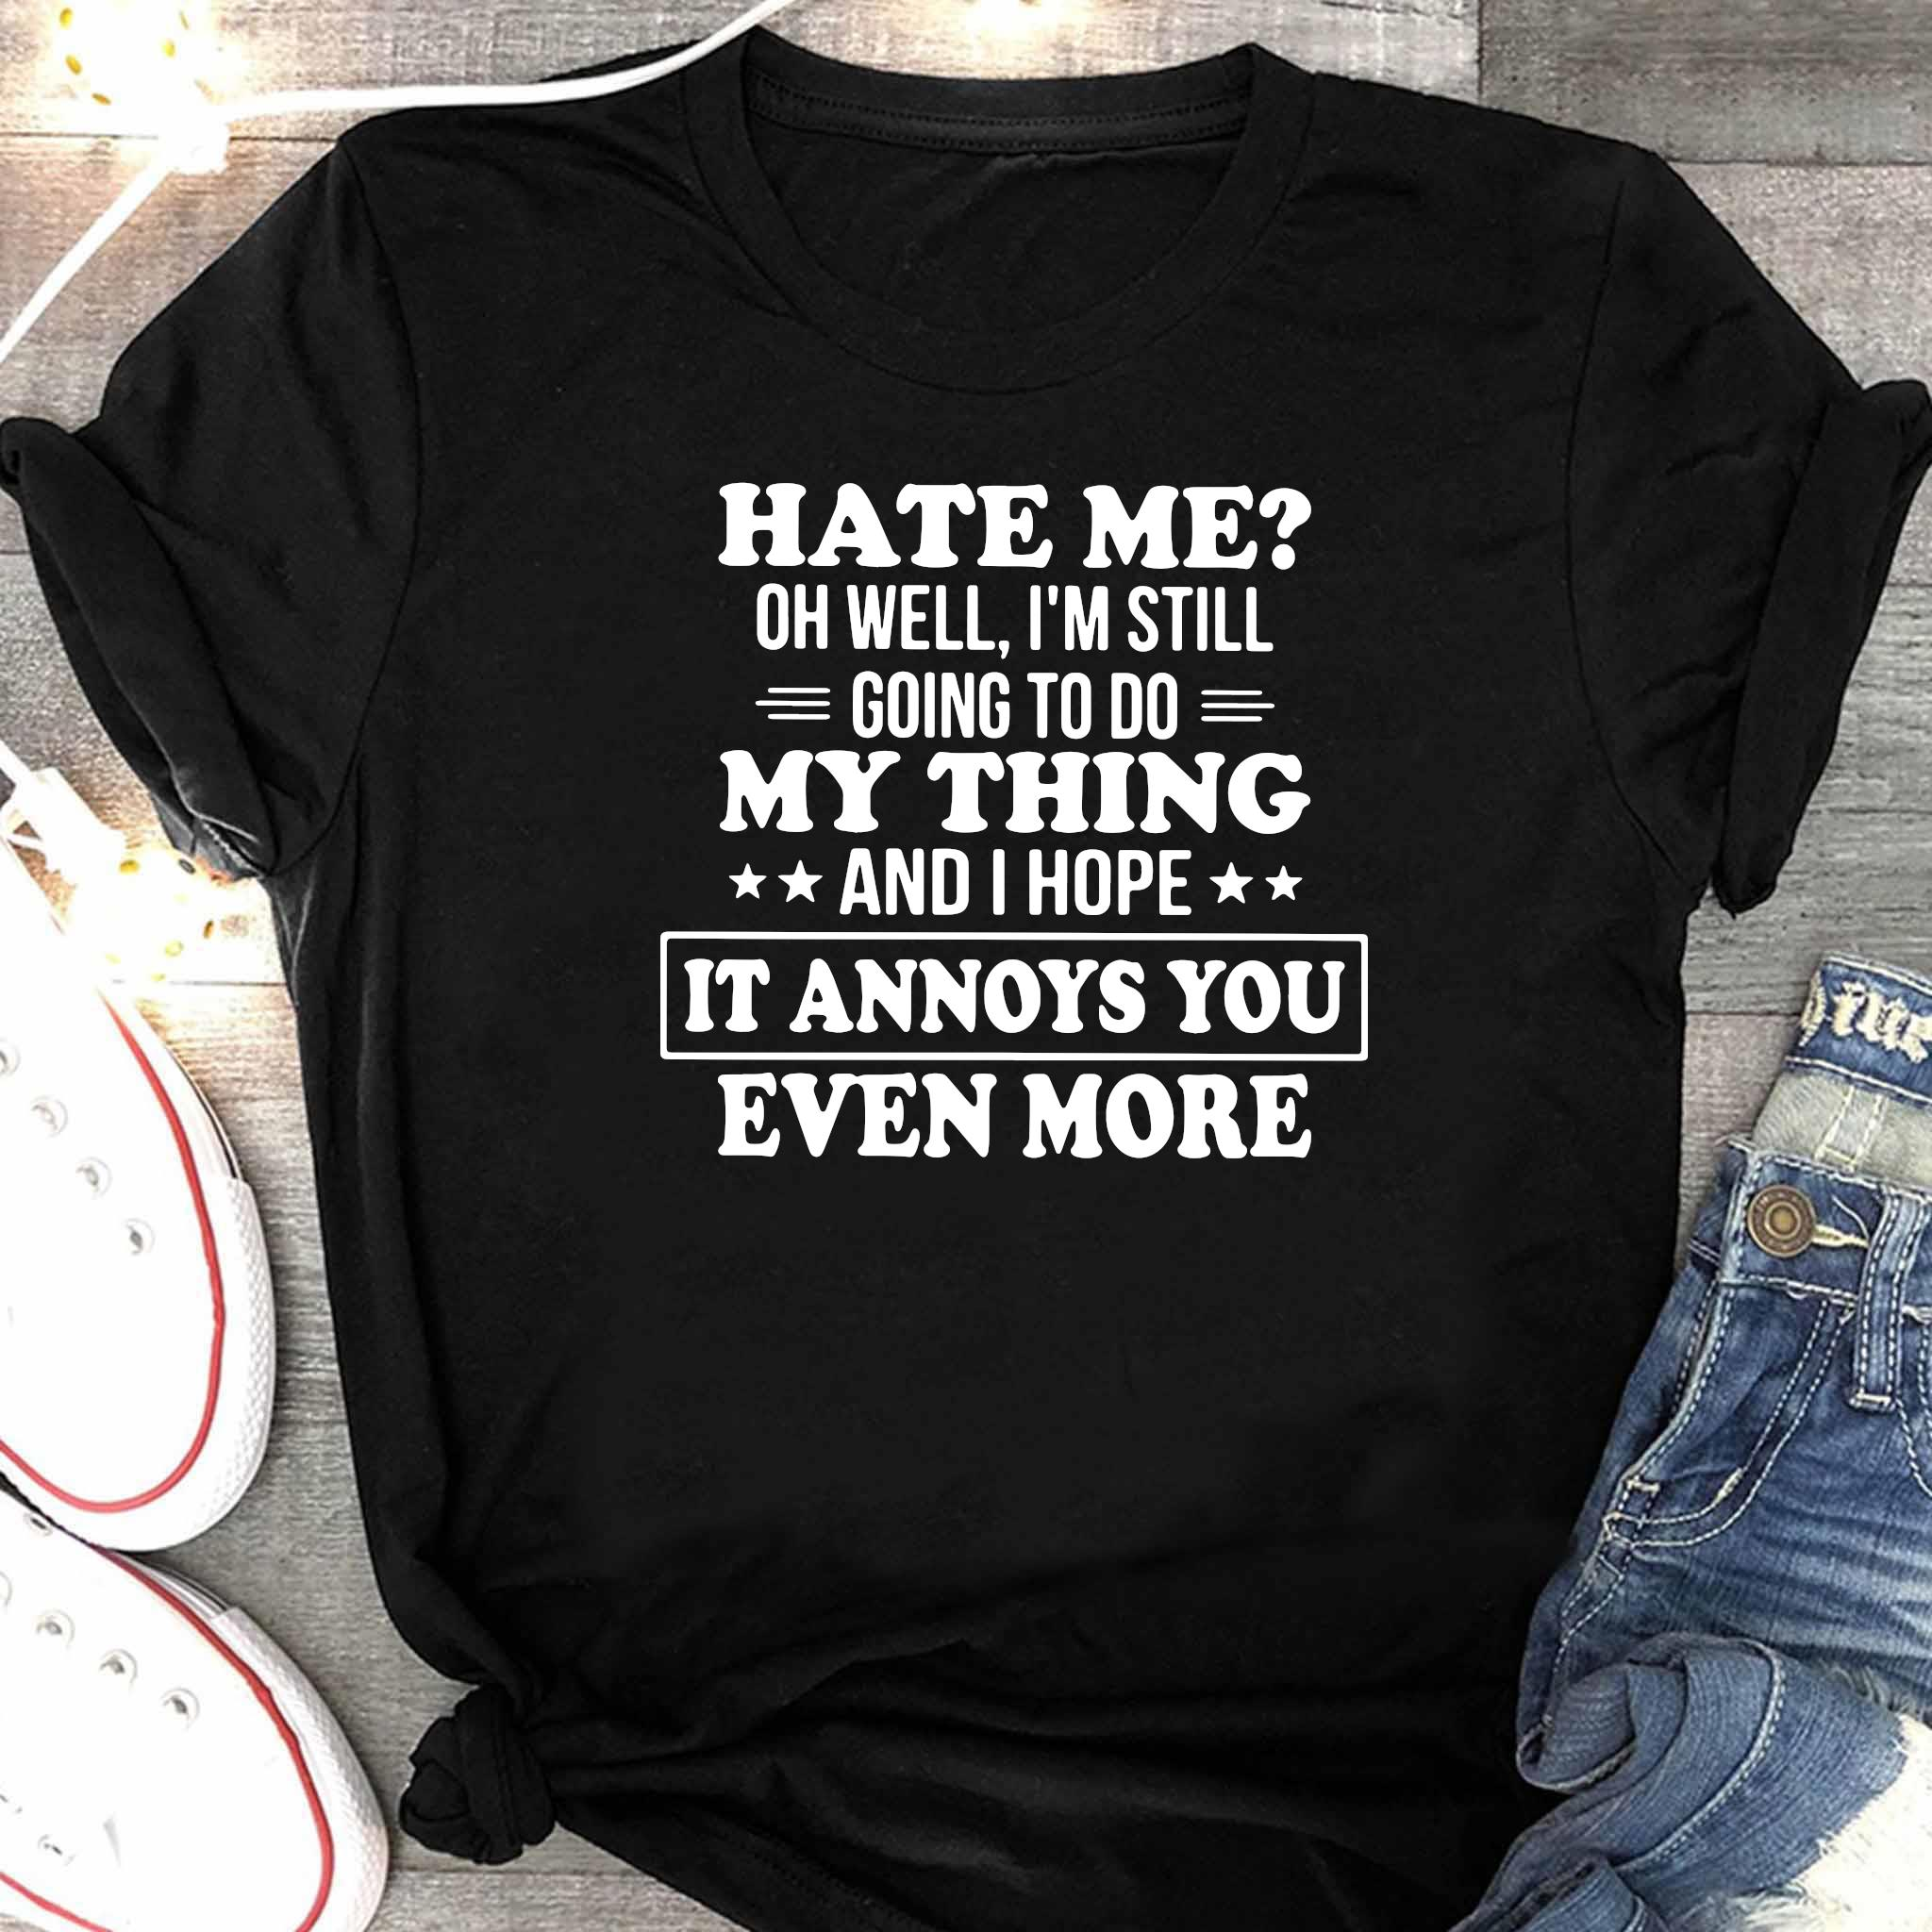 Hate Me Oh Well I'm Still Going To Do My Thing And I Hope It Annoys You Even More Shirt Women's Shirt